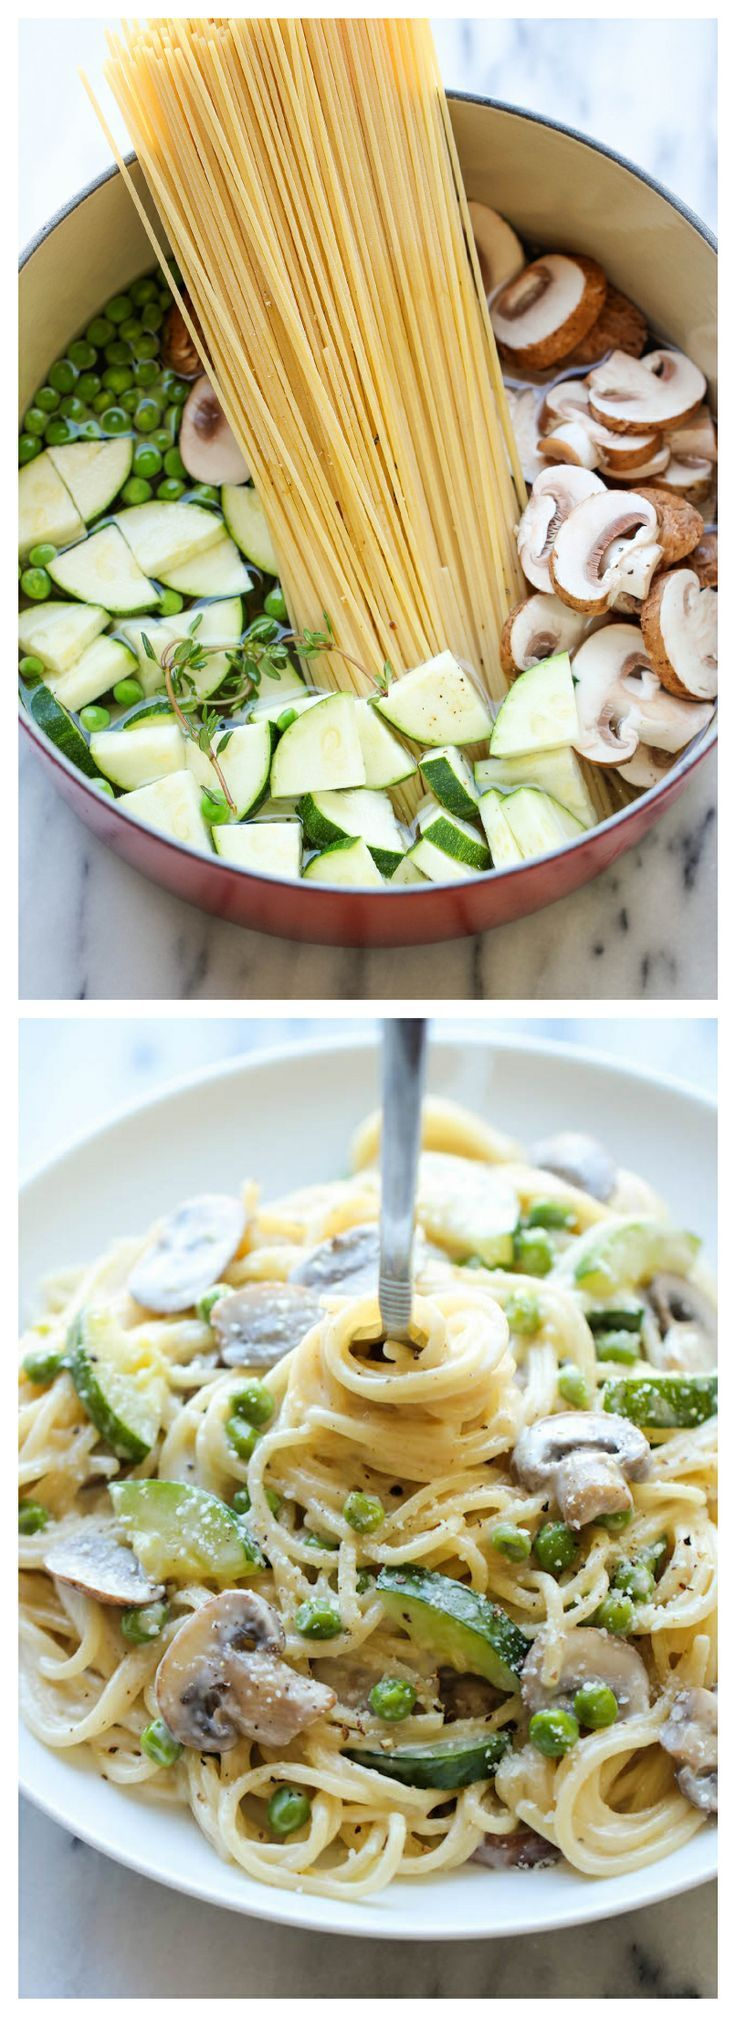 One Pot Zucchini Mushroom Pasta | Looks like an easy healthy recipe to try ✿⊱╮